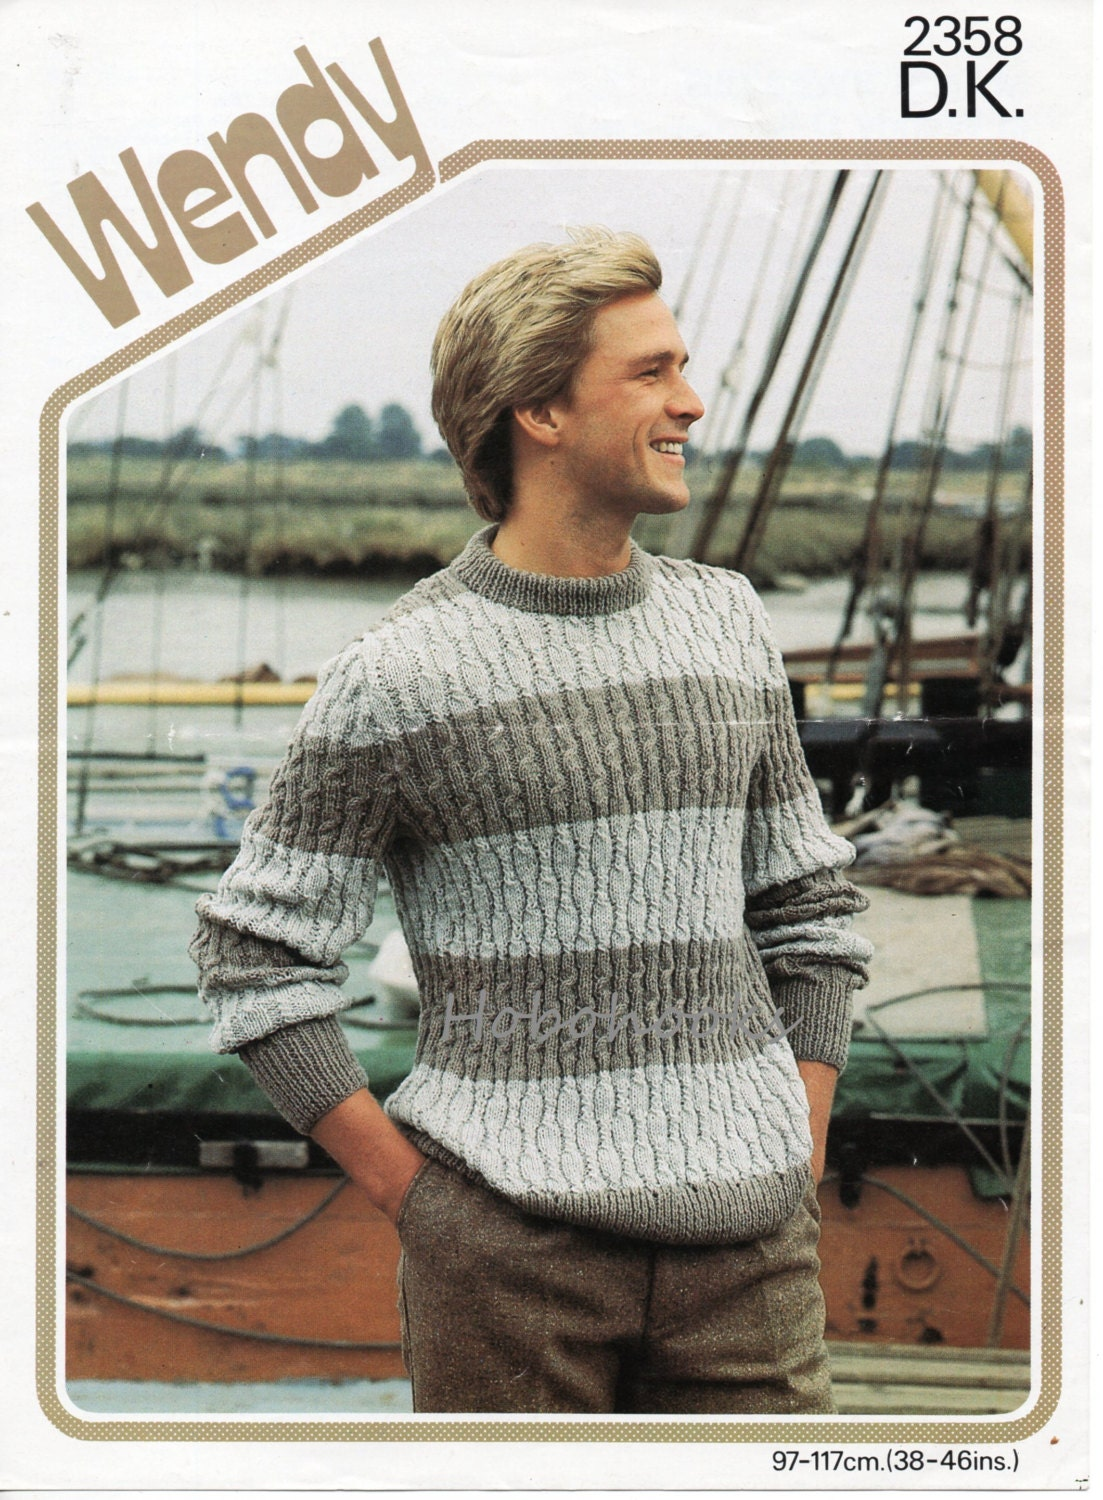 mens striped sweater knitting pattern crew neck 38-46 inch DK